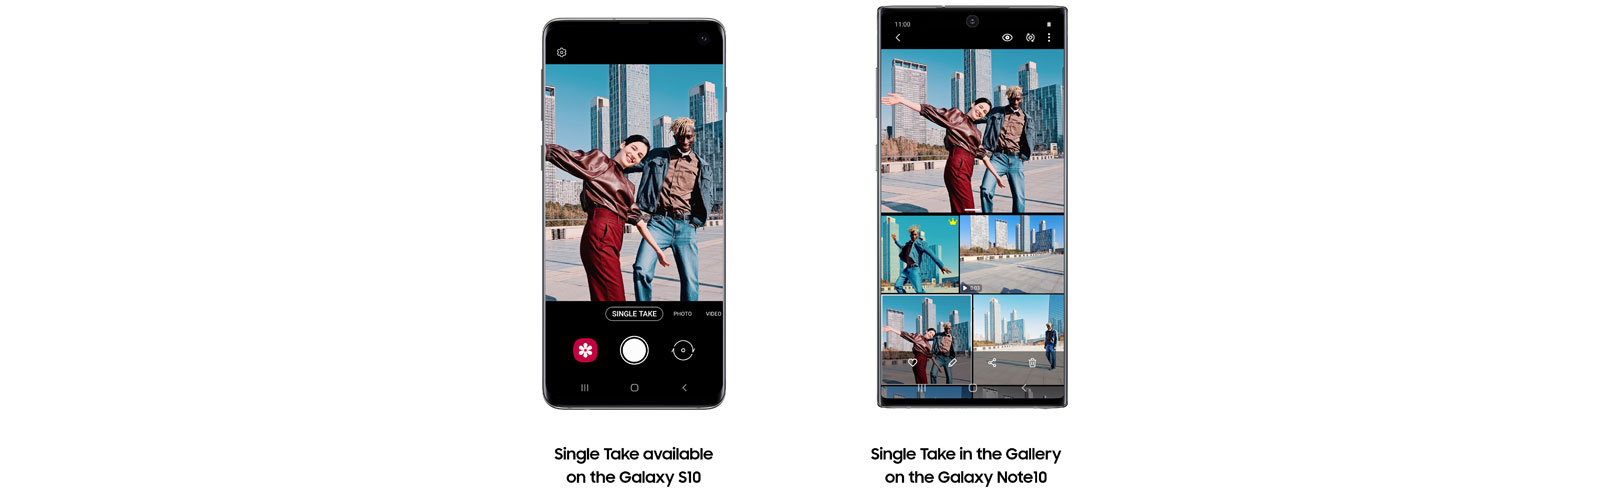 Samsung Galaxy S20 camera features will be available on the Galaxy S10 and Galaxy Note10